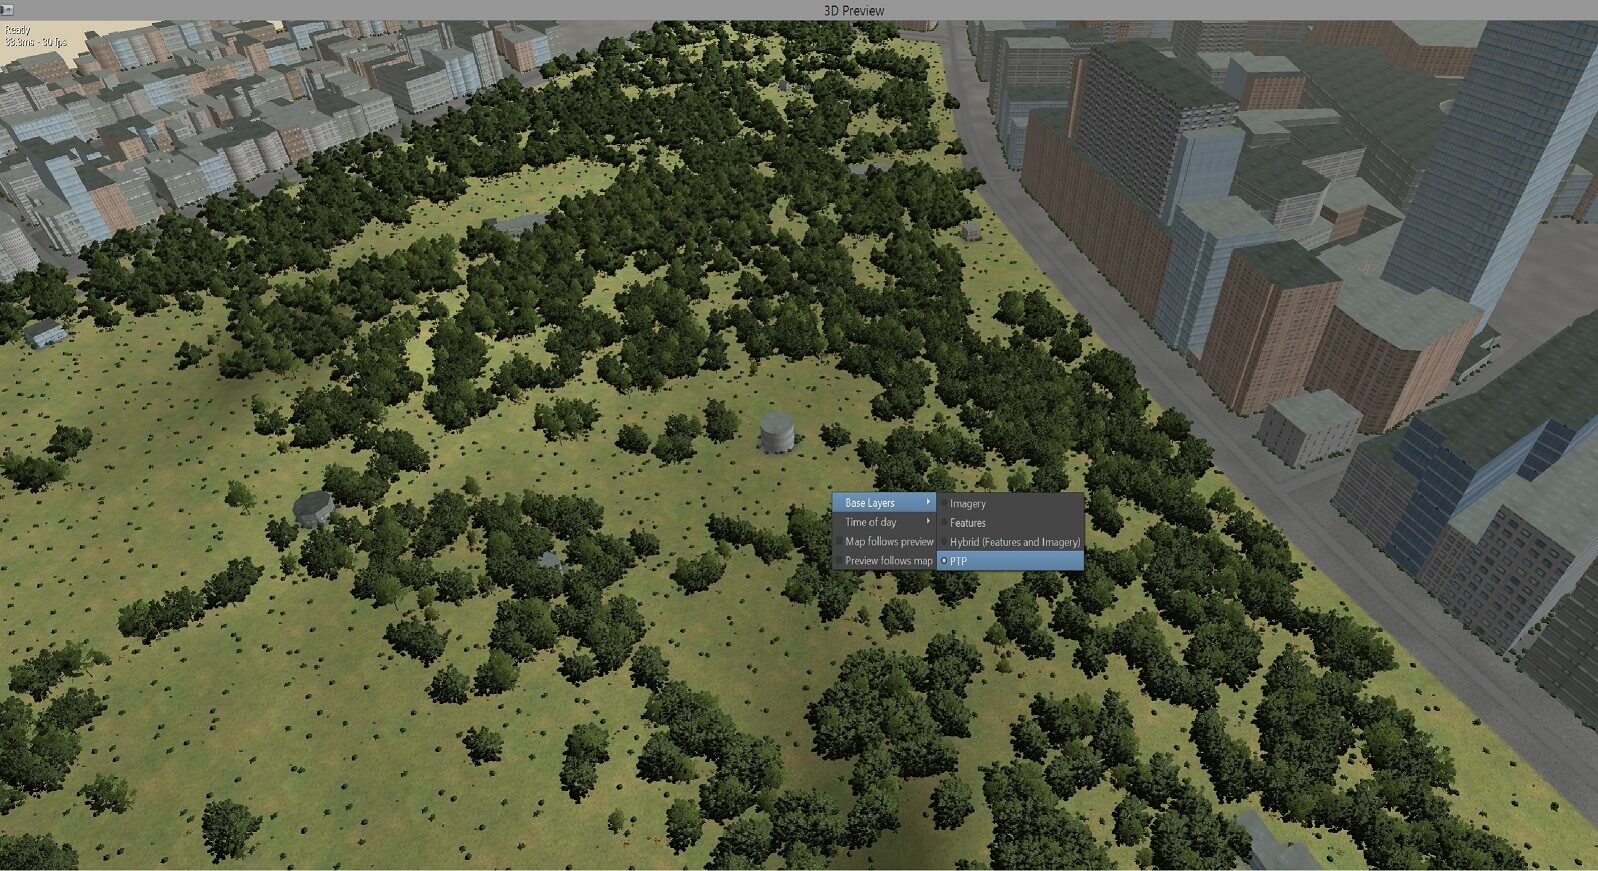 Conform Procedural Ground Texturing from Land Usage Coverage Definitions